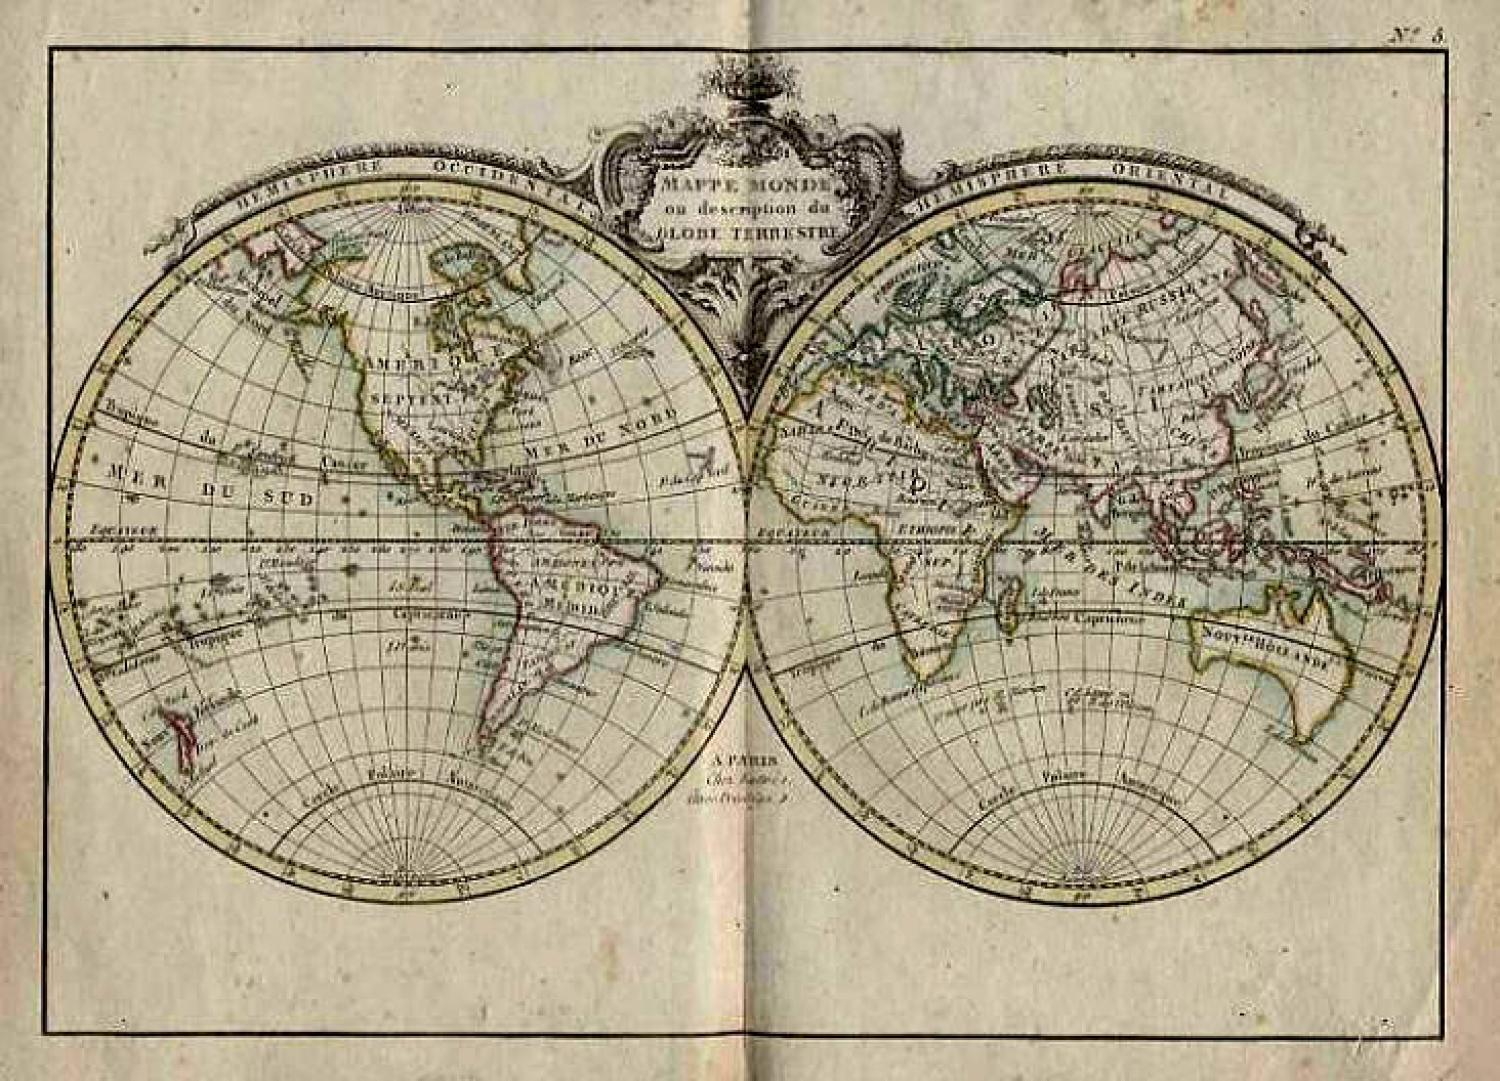 SOLD (Set of Six) Mappe Monde ou Description du Globe Terrestre